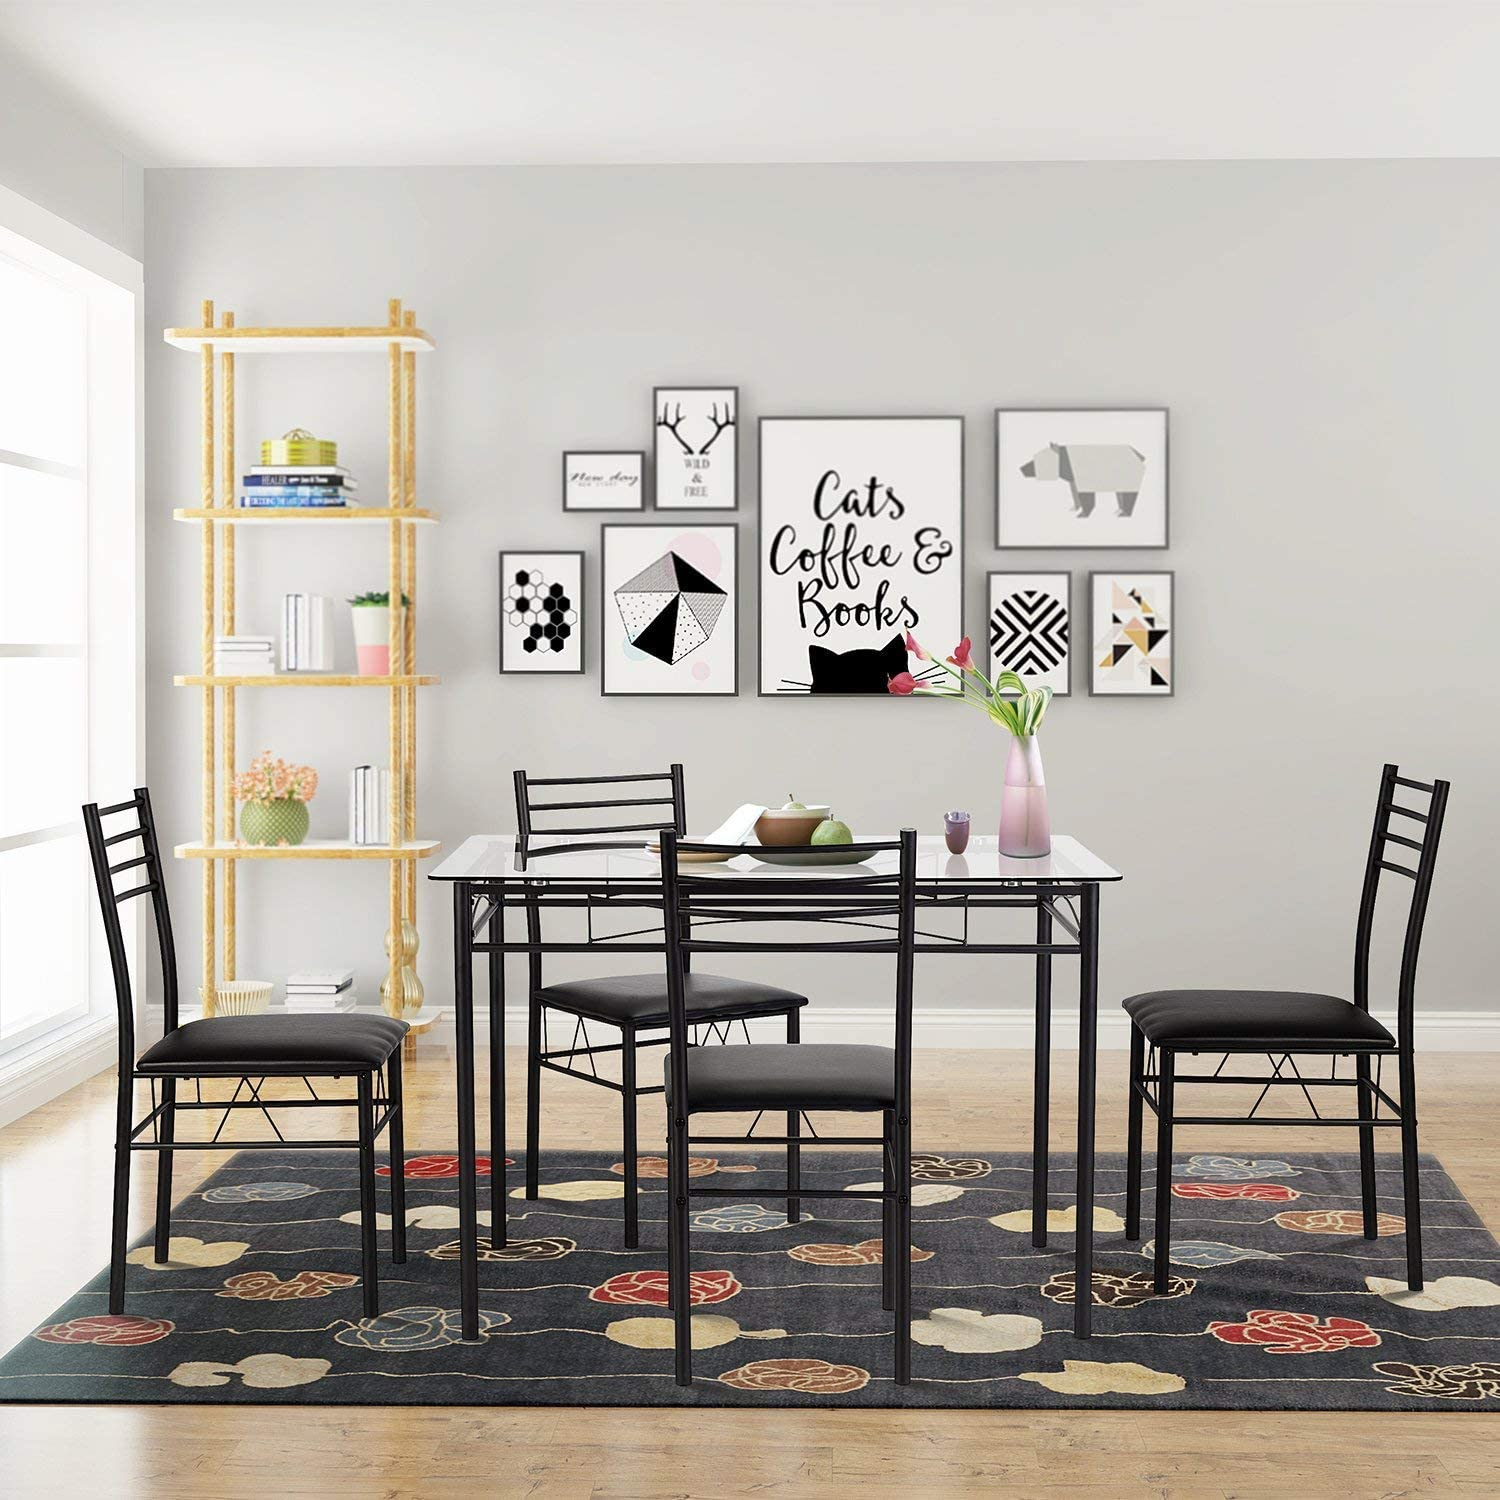 Best consumer rating: VECELO Dining Table with 4 Chairs,4 Placemats Included, Black